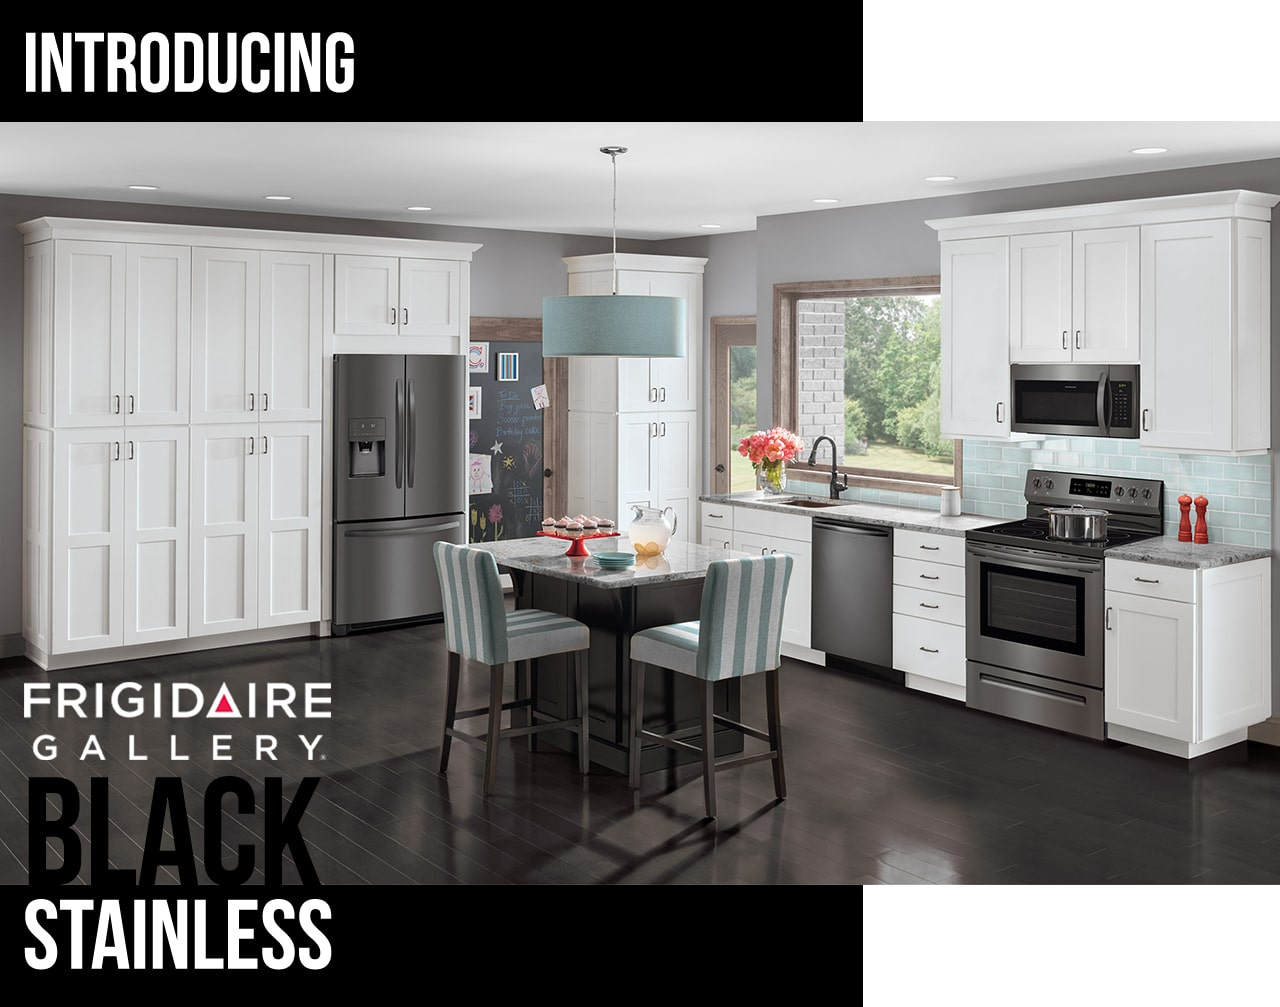 Frigidaire Gallery Black Stainless Steel With Smudge Proof